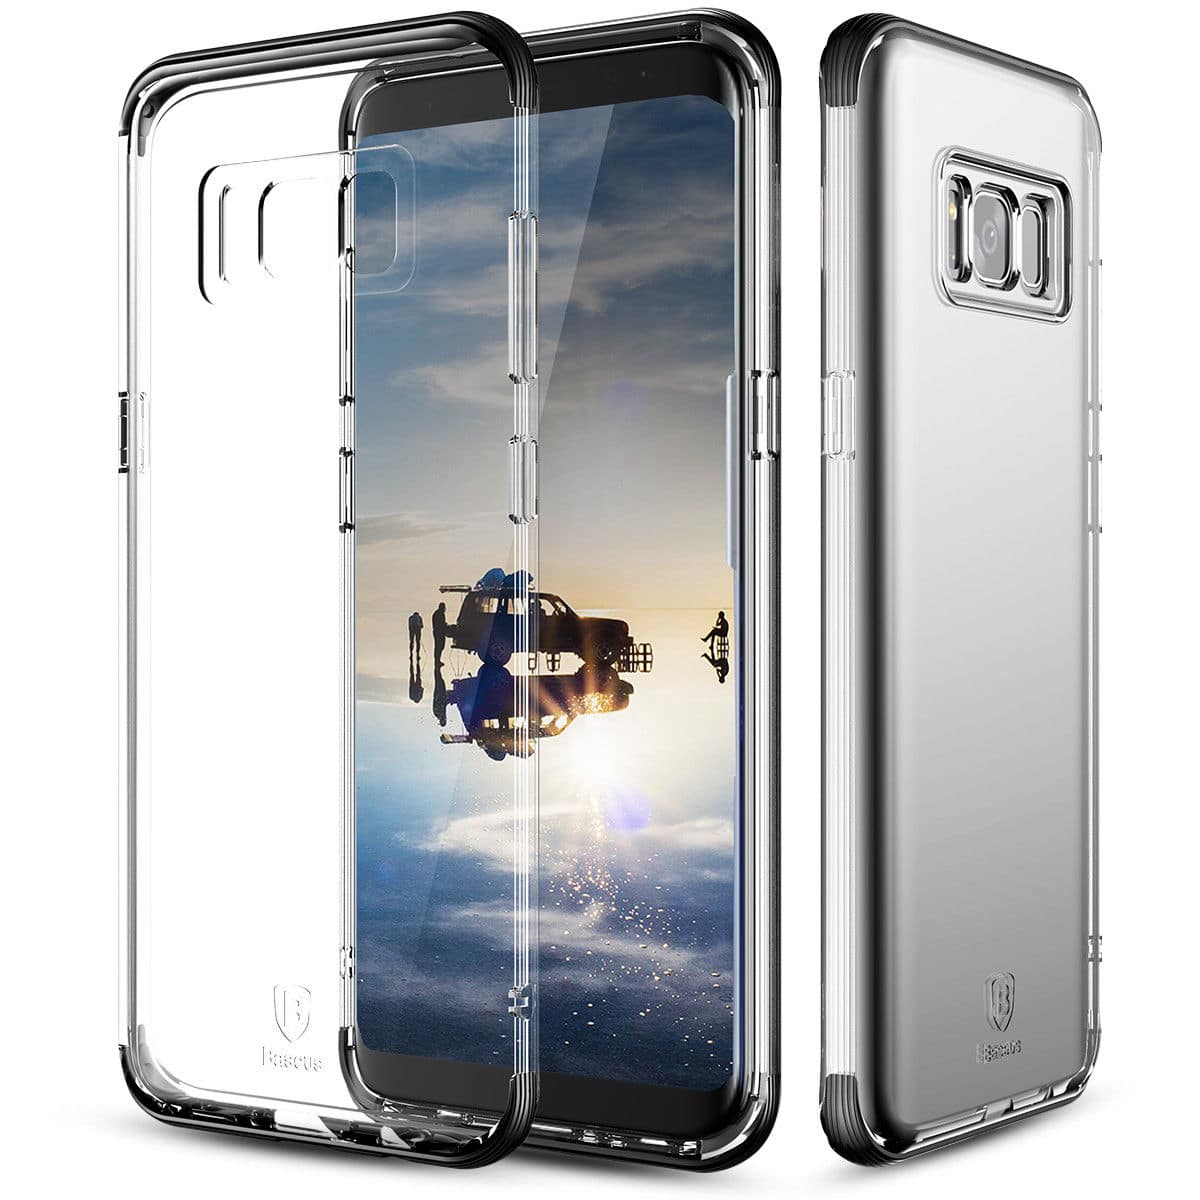 promo code 04558 3e8c0 A-Depot Cases for Galaxy S9/S9 Plus & More: Starting from $2.99 + FS ...